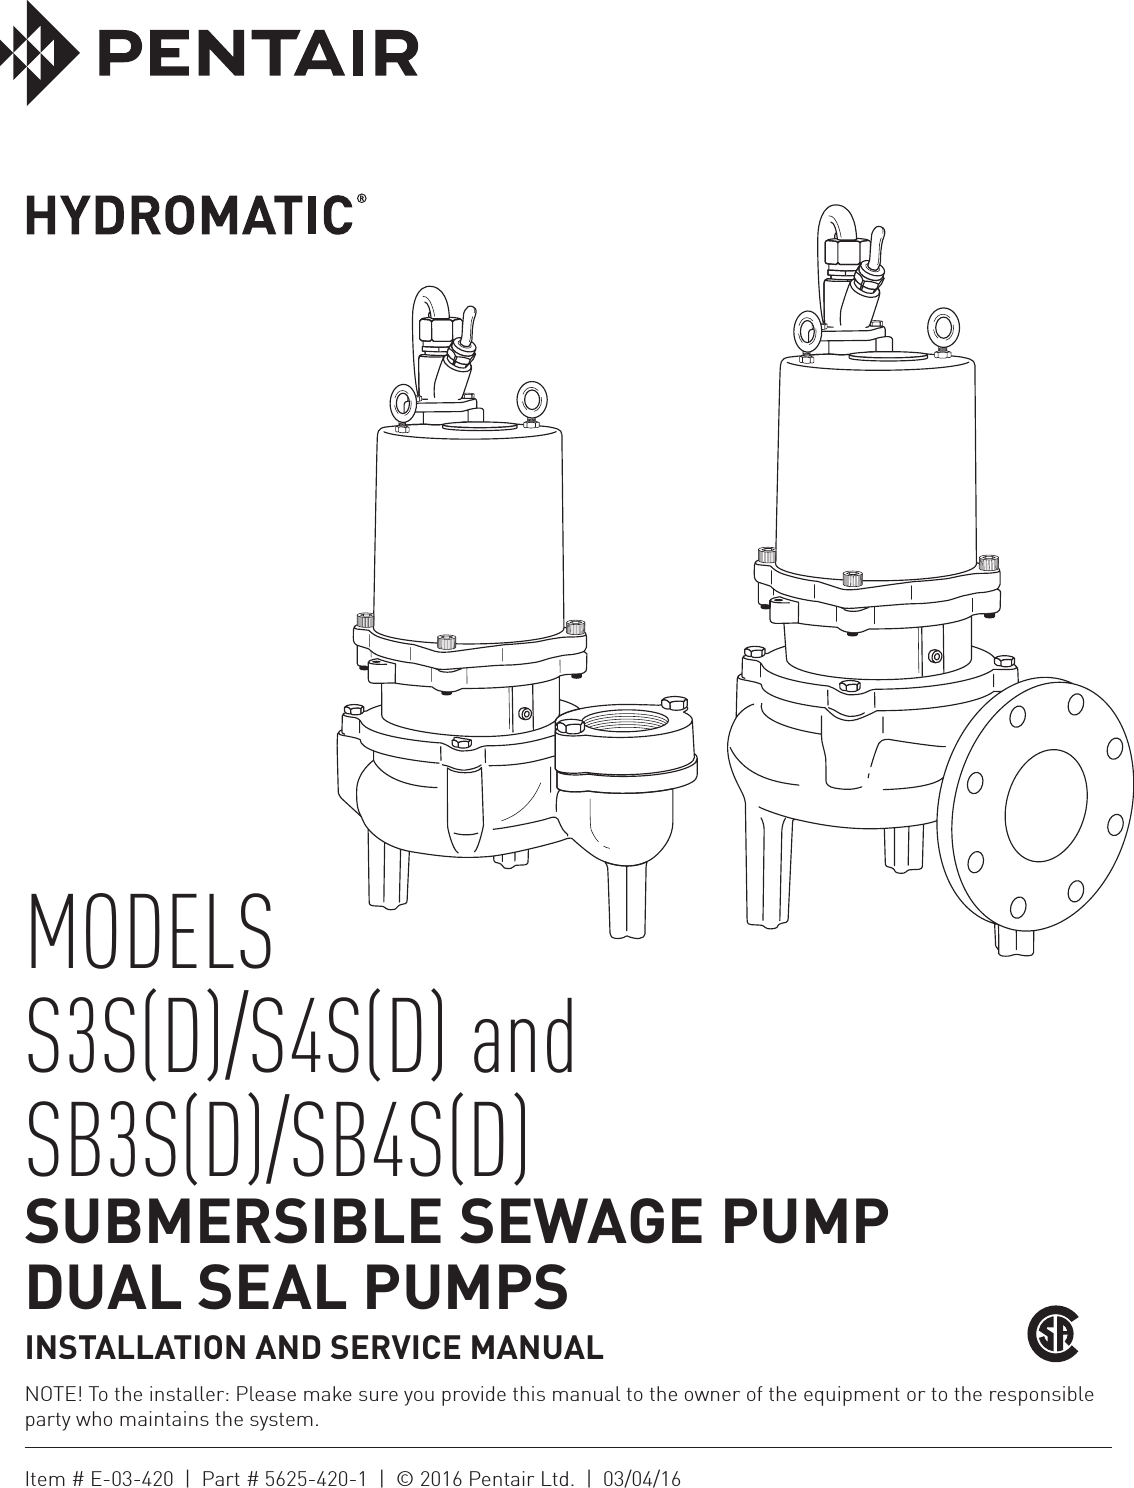 Page 1 of 12 149588 2 myers s4sd sb4sd installation manual user